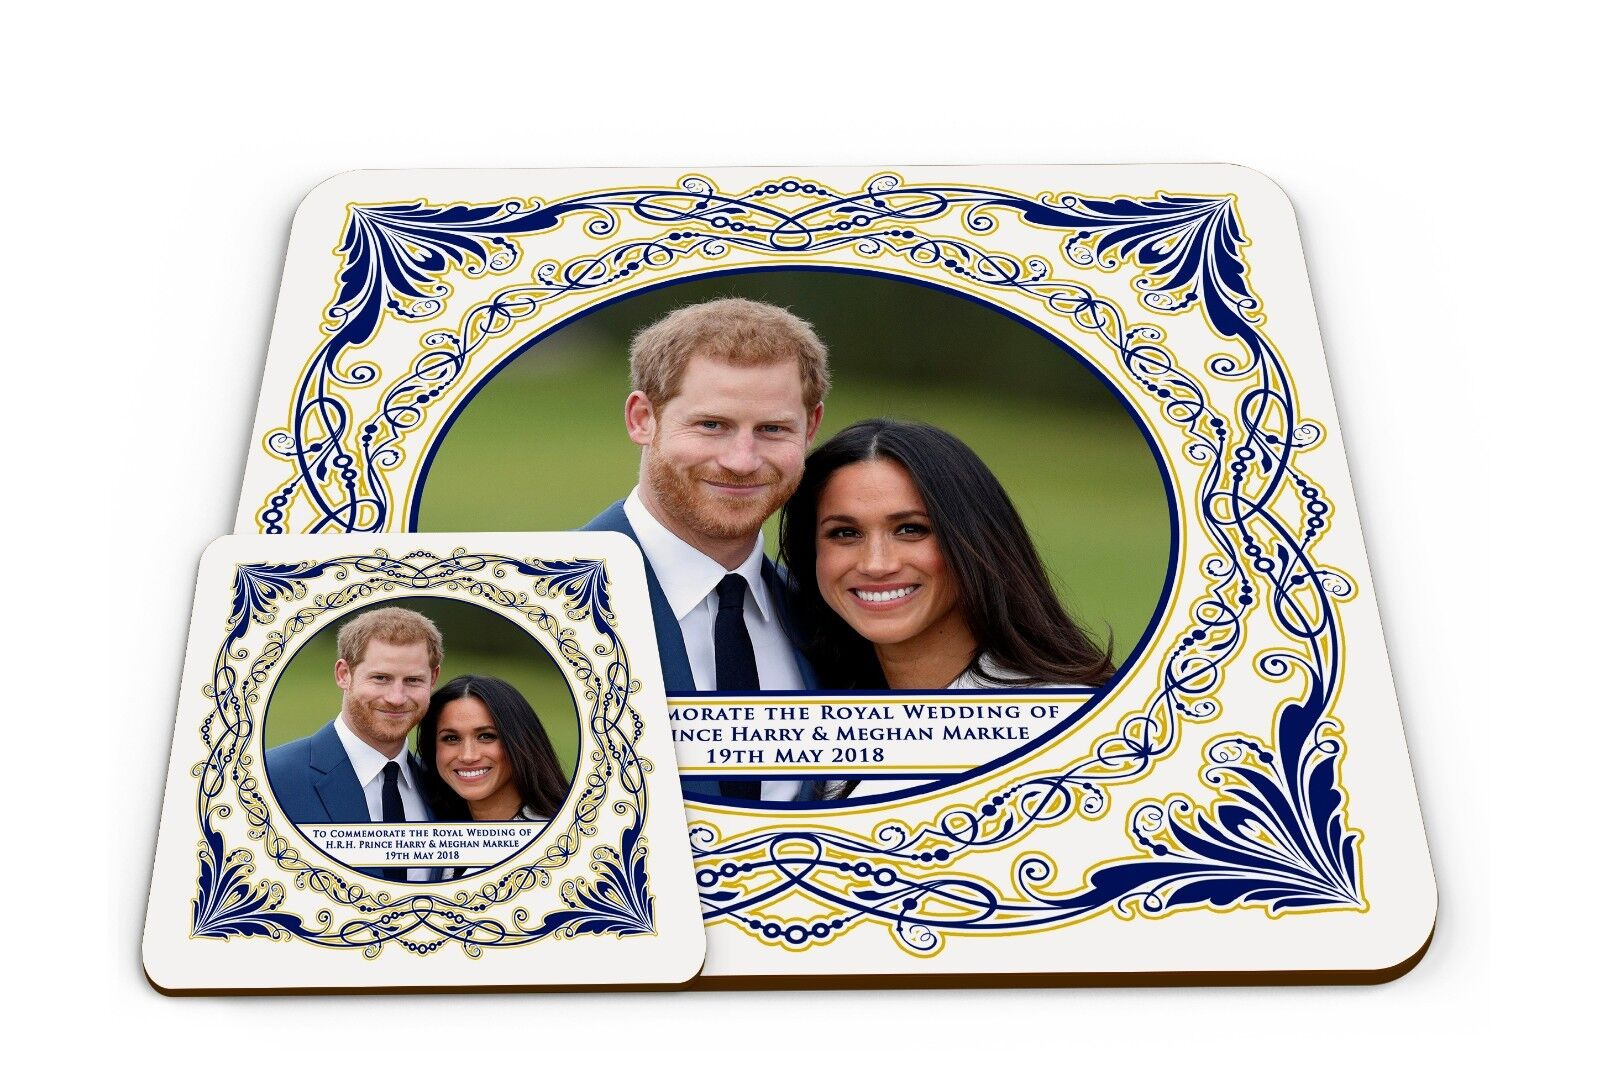 Set of Royal Wedding of HRH Prince Harry & Meghan Glossy Placemat & Coaster